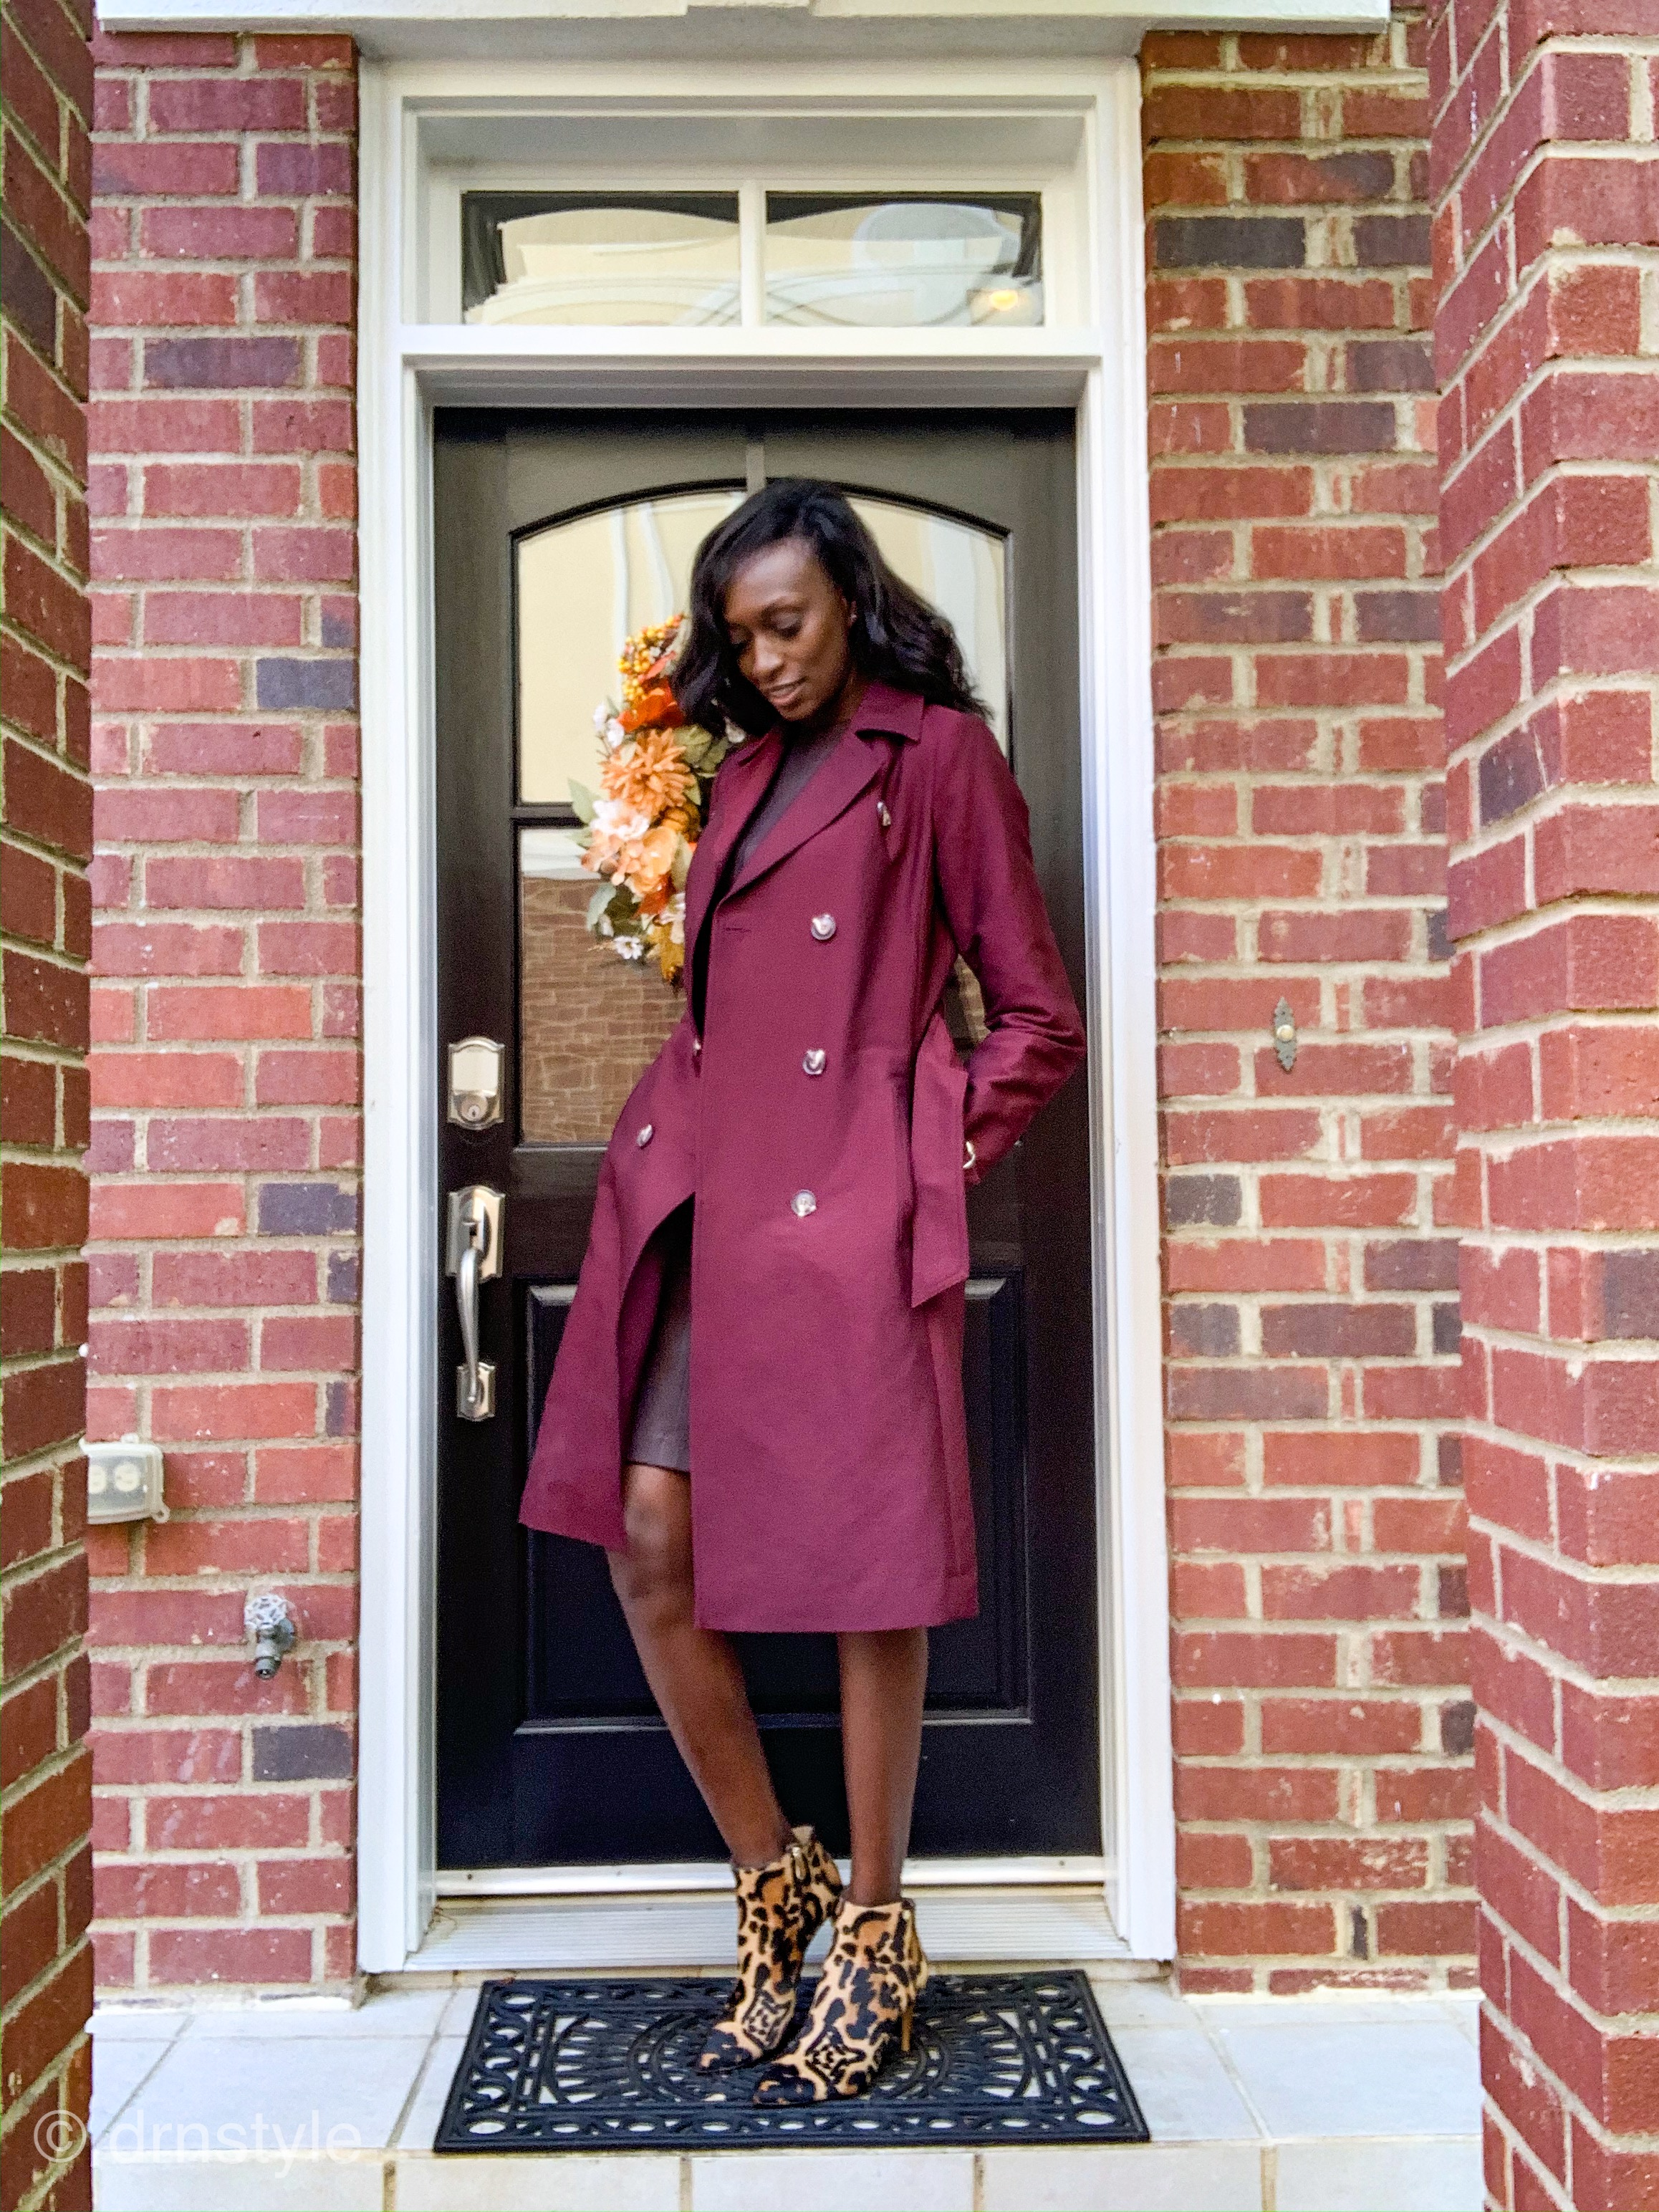 Beautiful tall woman wearing classy knee-length wine colored leather dress by Vince, chic wine trench coat by Long Tall Sally and sexy leopard print ankle boots for fall/winter style.